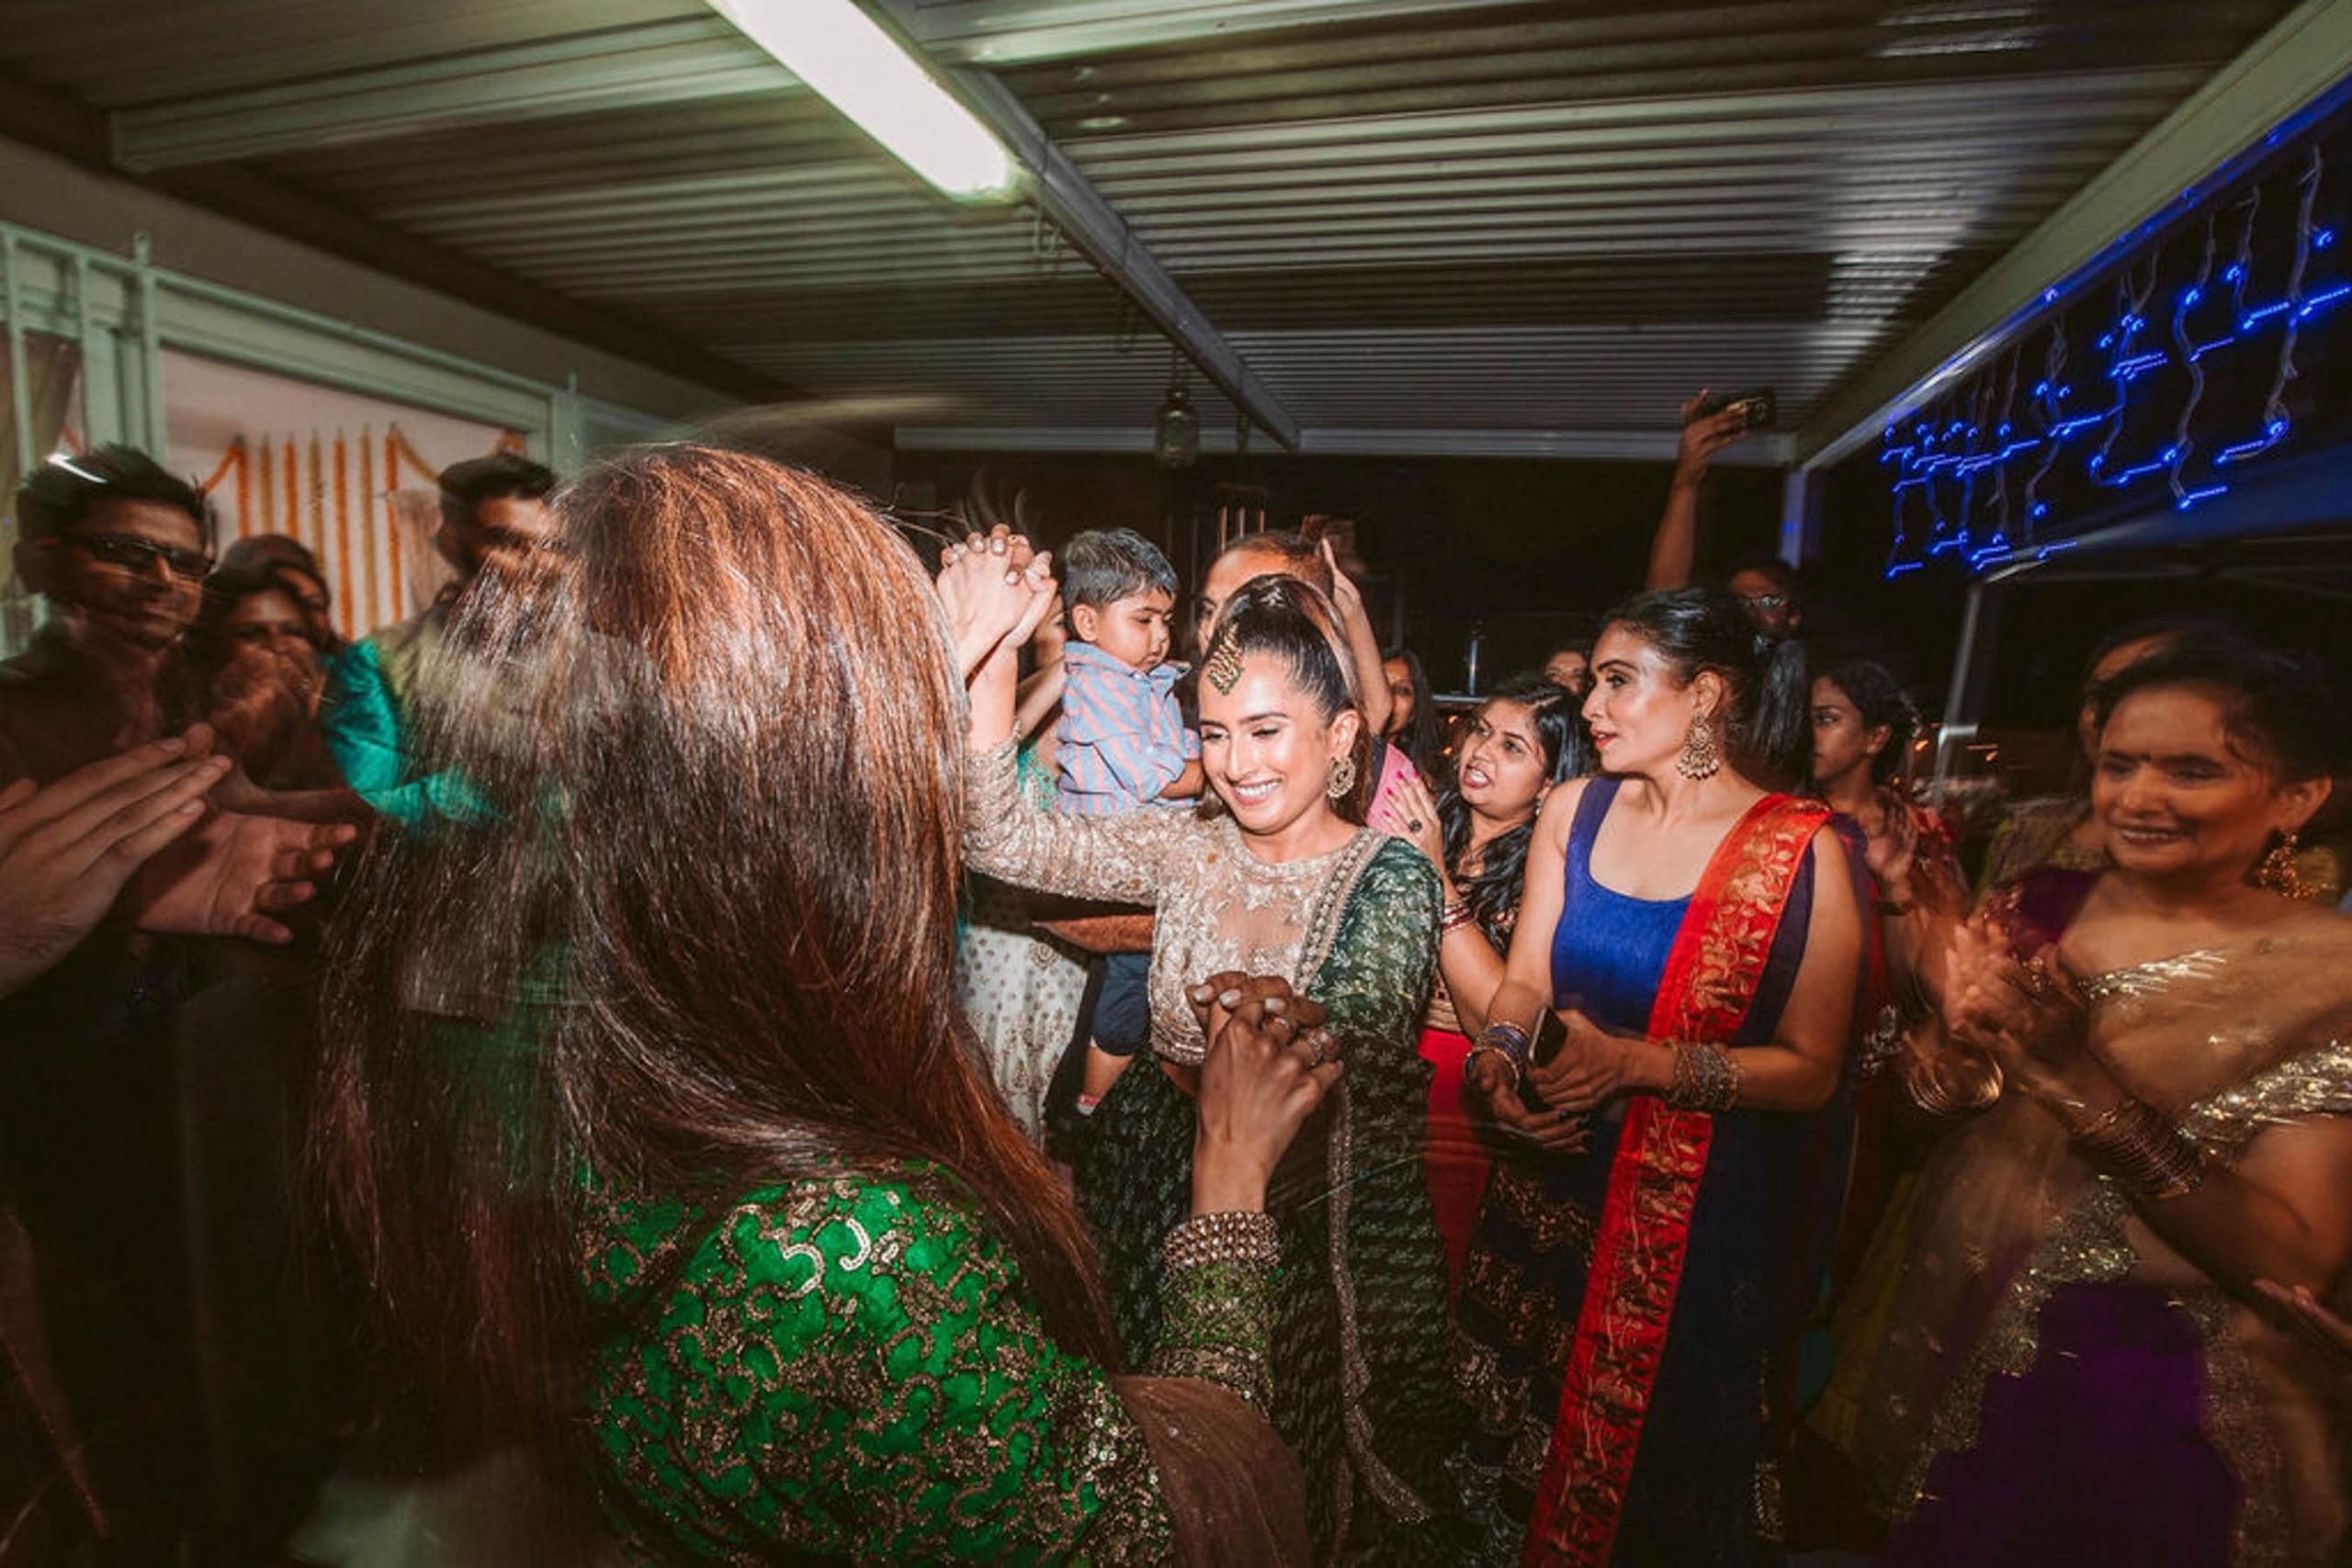 Indian bride Shaheen had a multi-day cross cultural wedding in Sydney, which included a sangeet, mehndi, haldi and Nikah wedding ceremony.